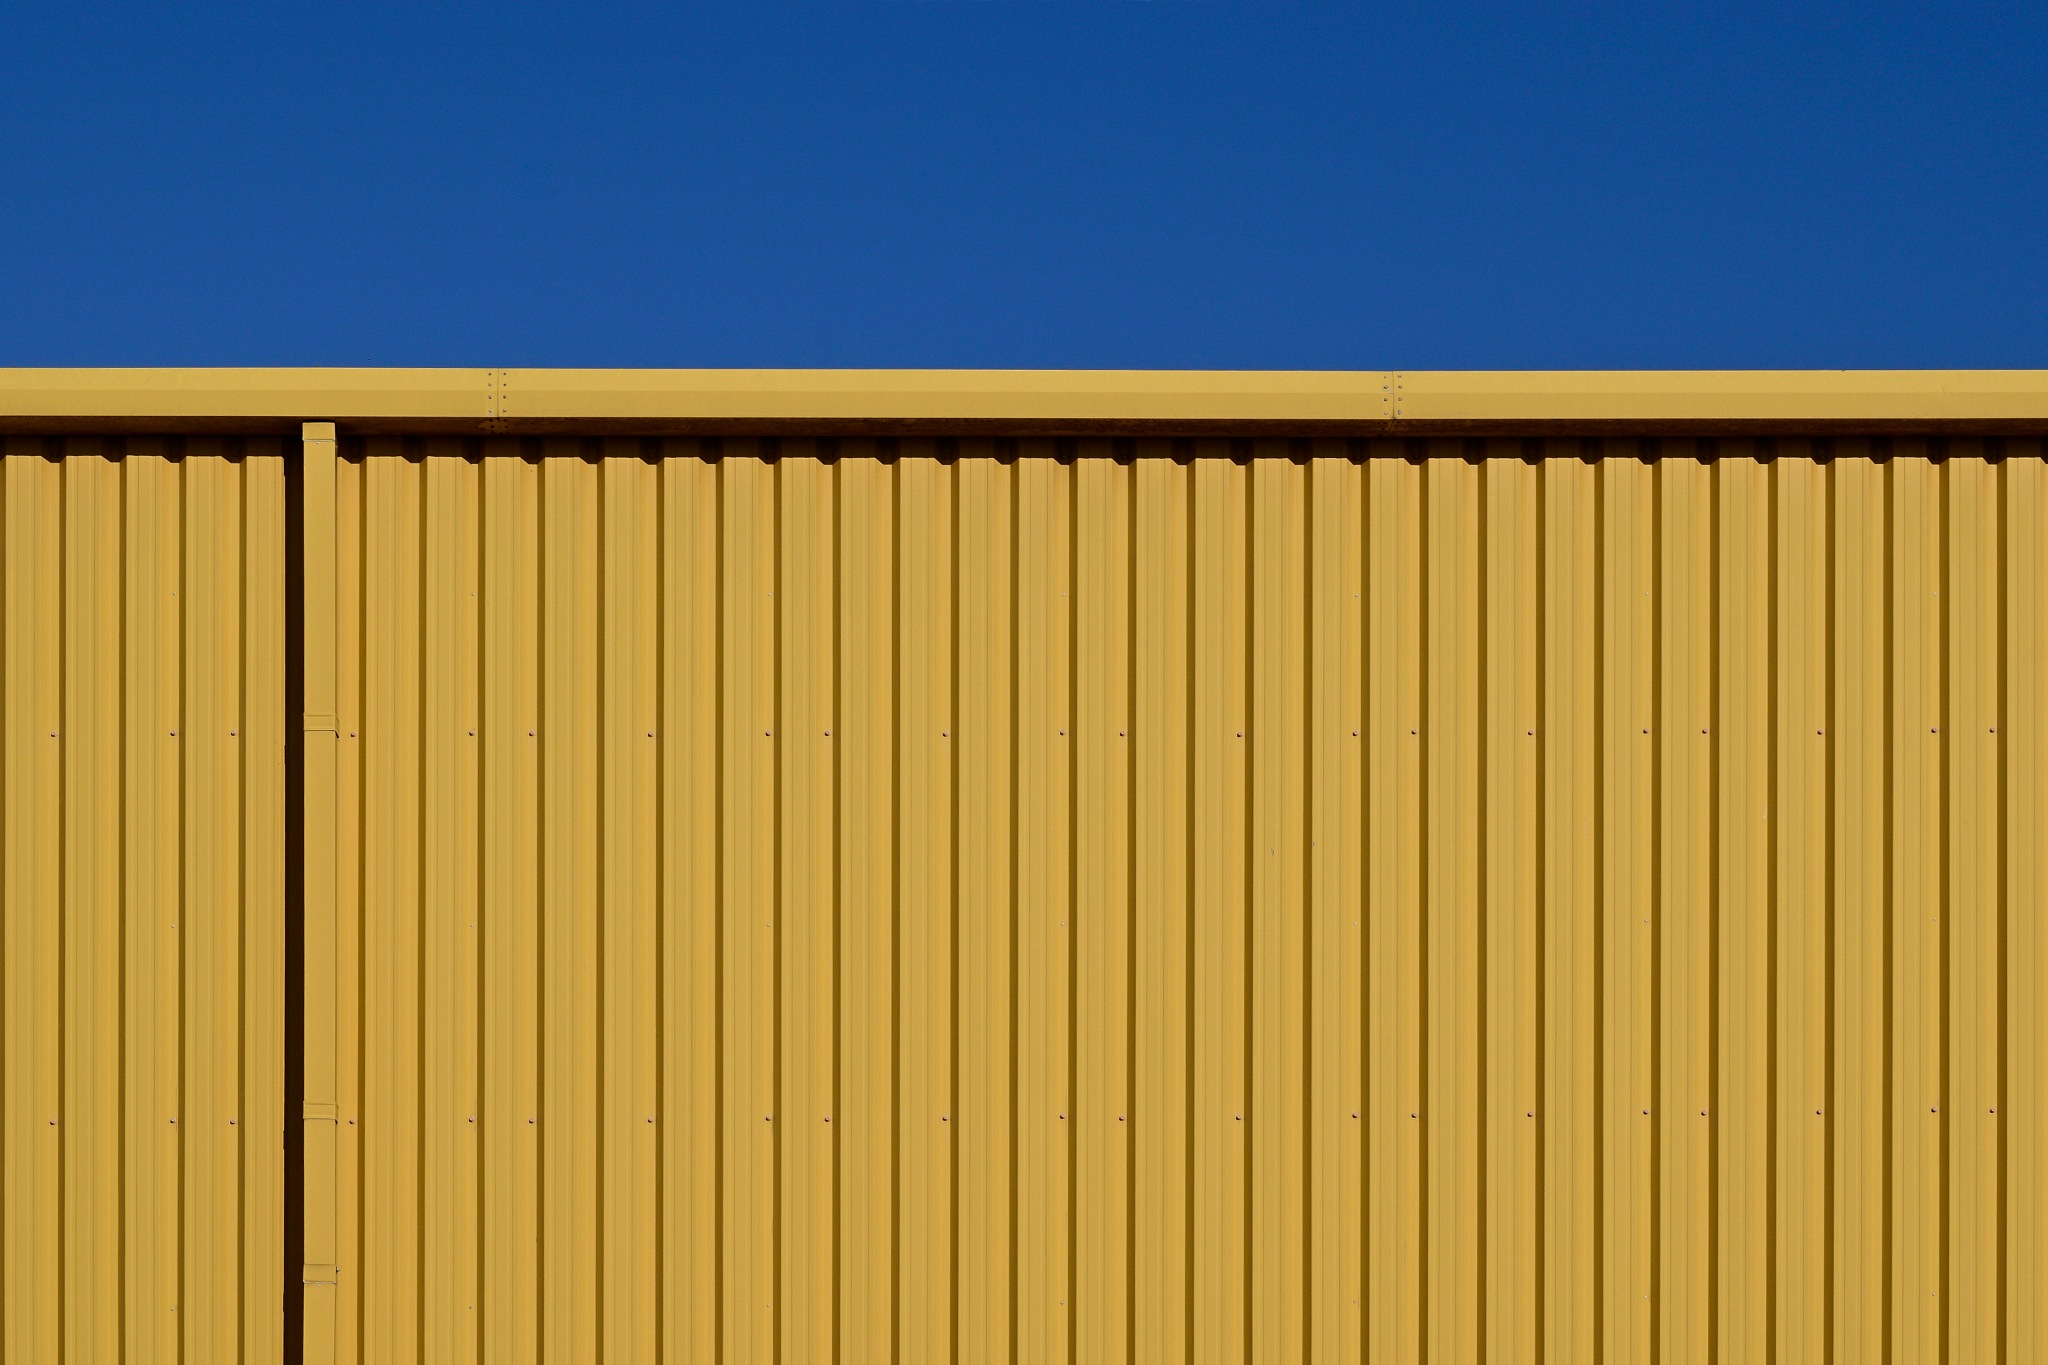 Blue and Yellow by Will Compton